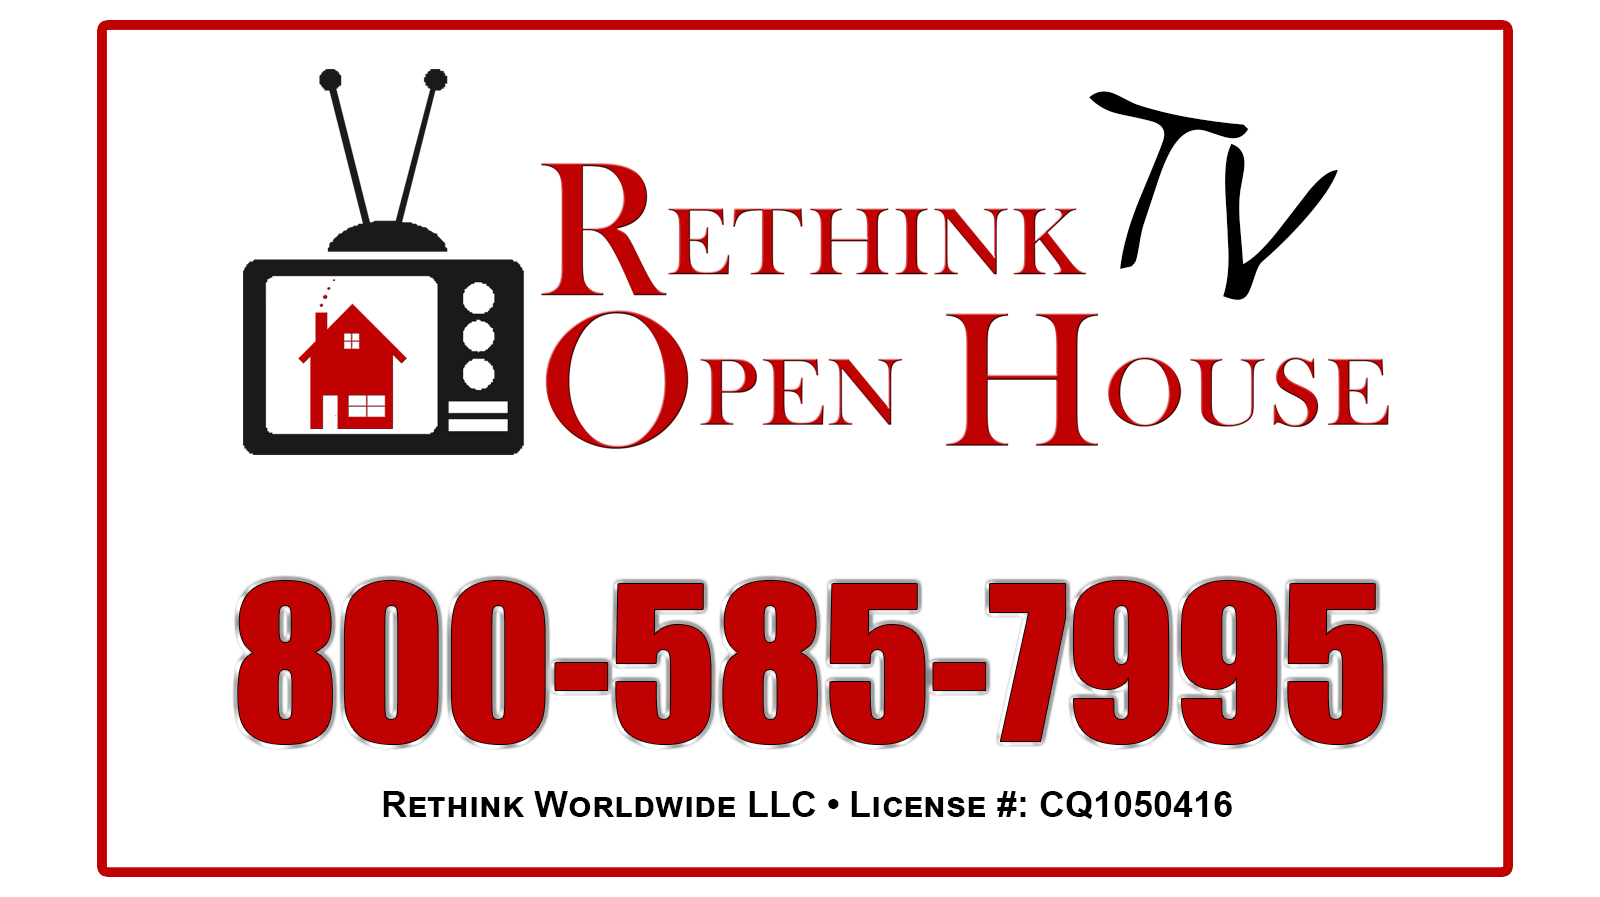 Rethink Open House - Rethink Worldwide LLC